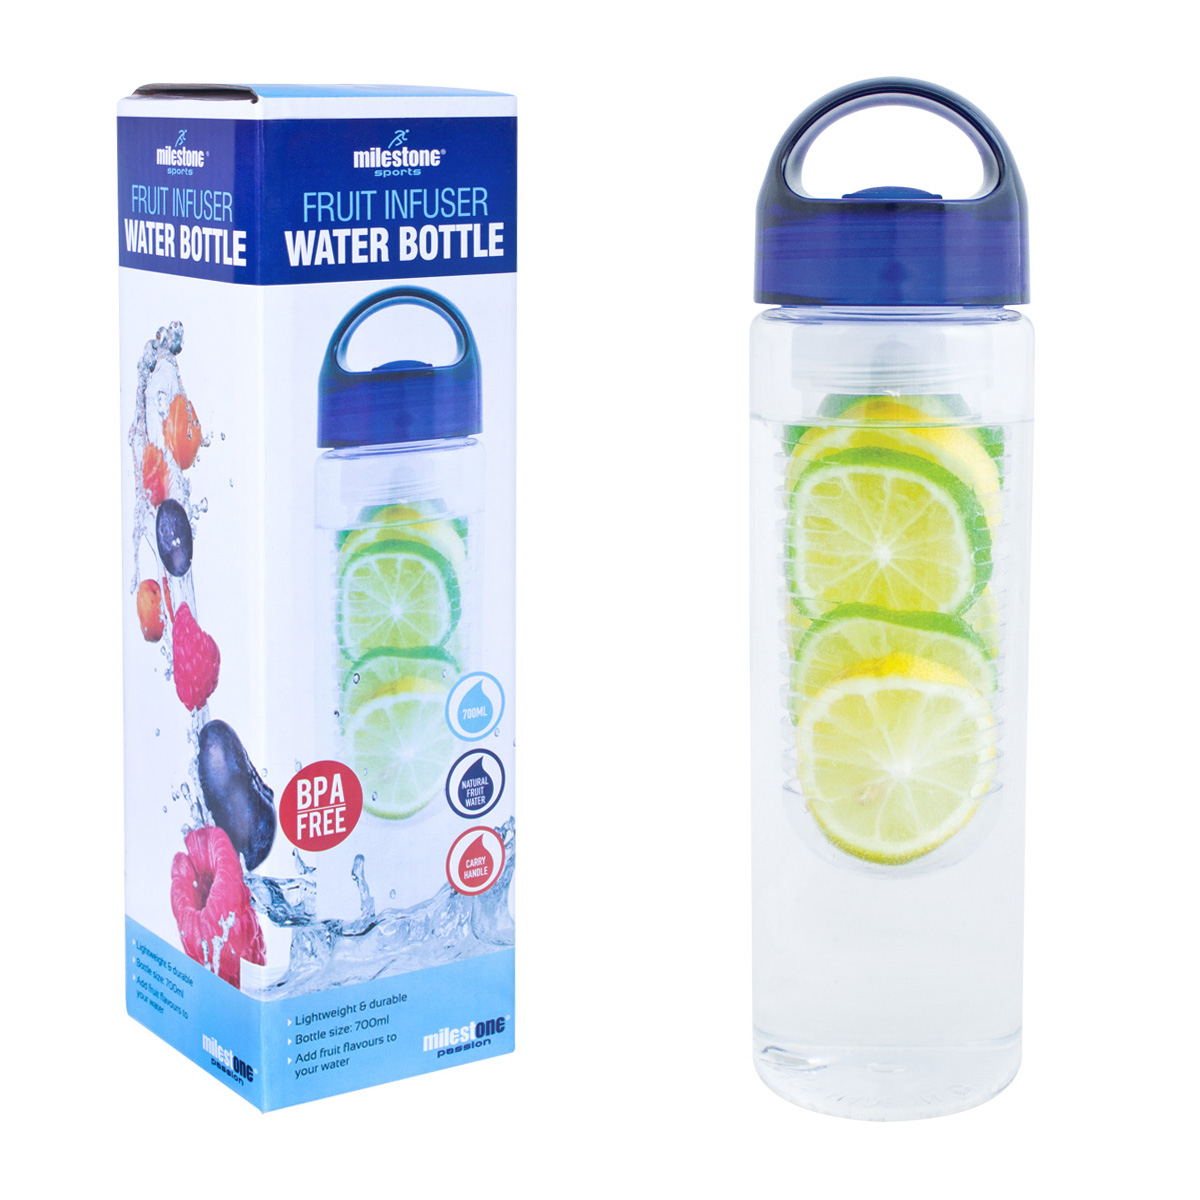 Domestic disposable cups or glasses or lids Milestone Infuser Water Bottle 750ml Ref 0303025